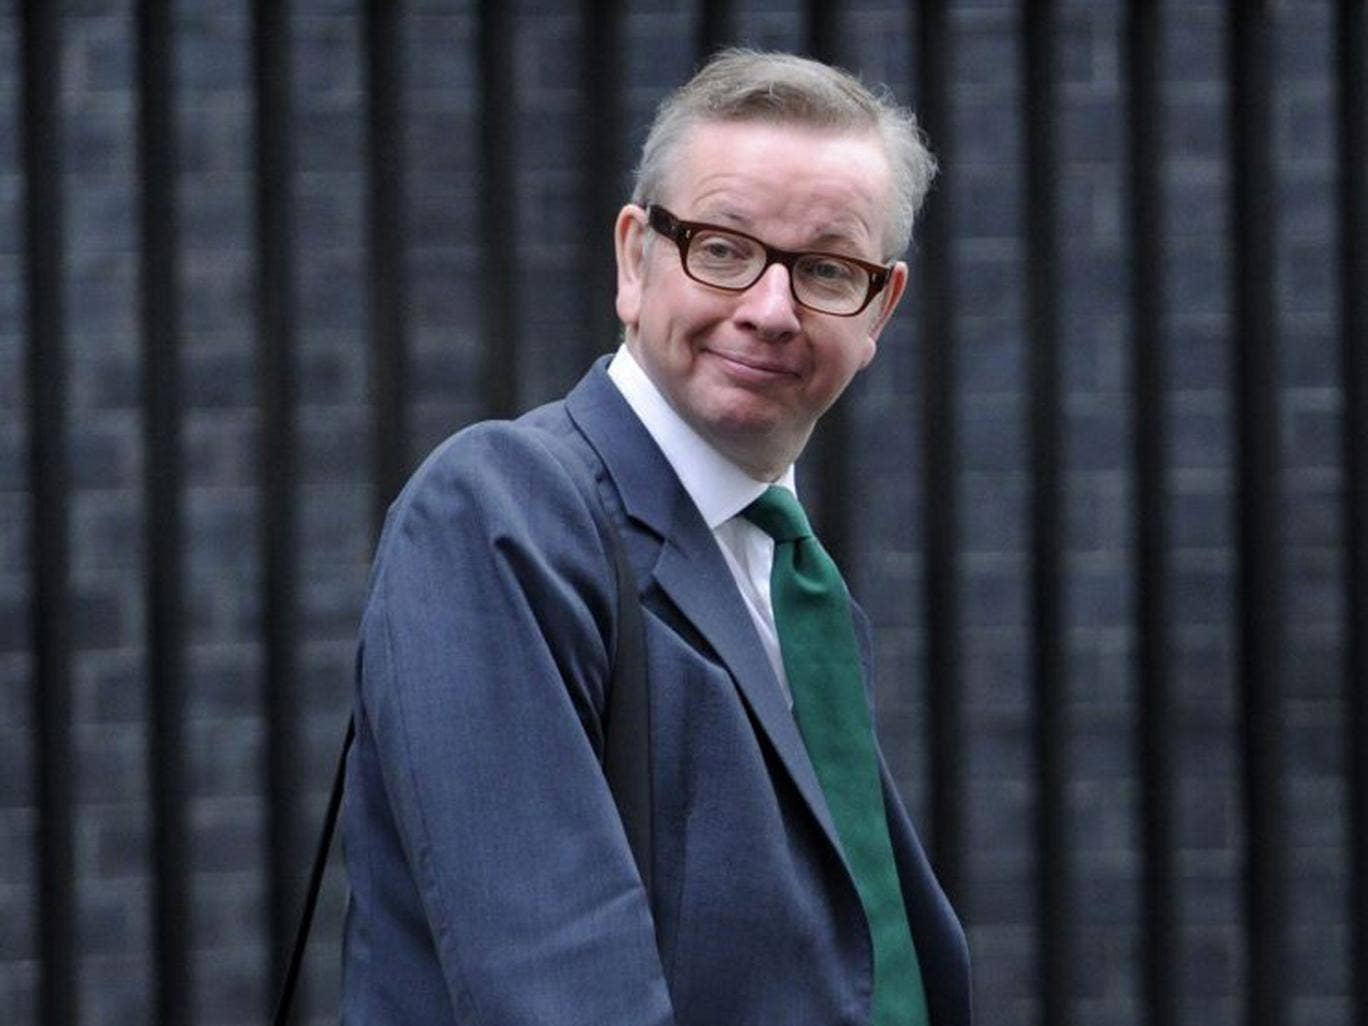 Michael Gove has suggested Moocs be used in schools to broaden the curriculum